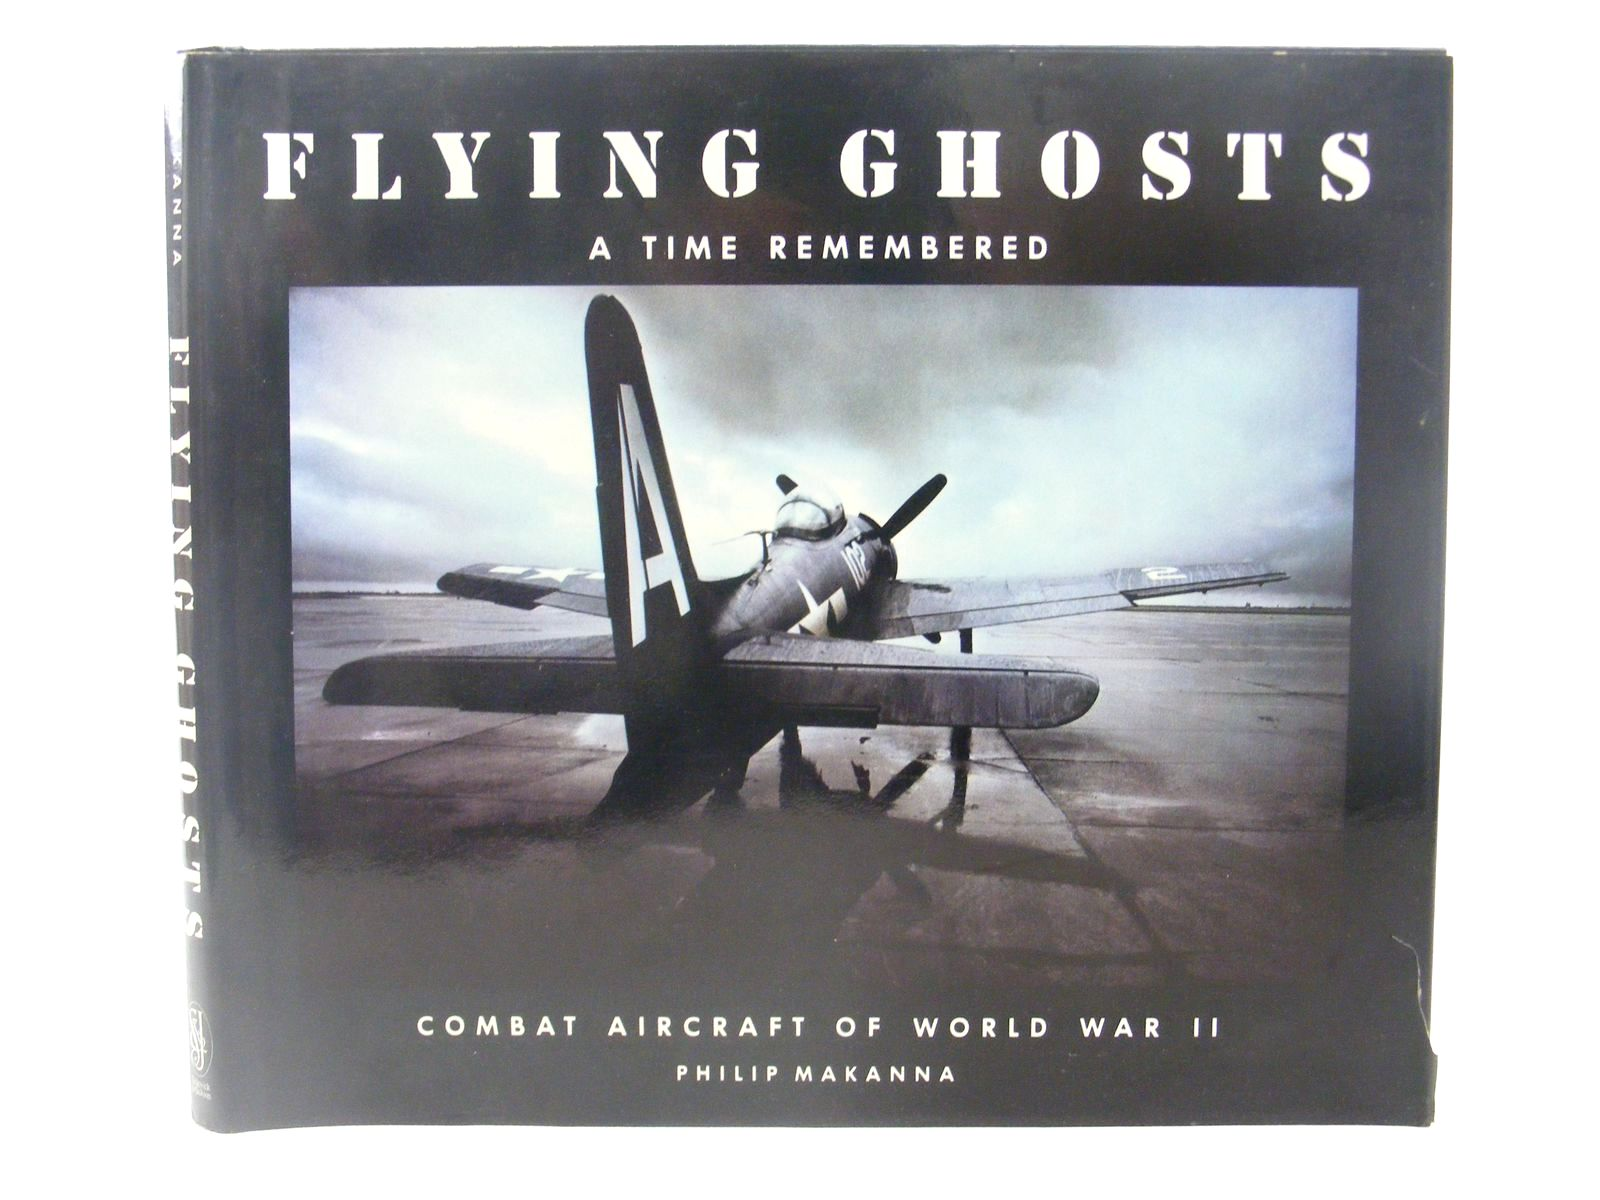 Photo of FLYING GHOSTS A TIME REMEMBERED written by Makanna, Philip published by Sidgwick & Jackson (STOCK CODE: 1610289)  for sale by Stella & Rose's Books